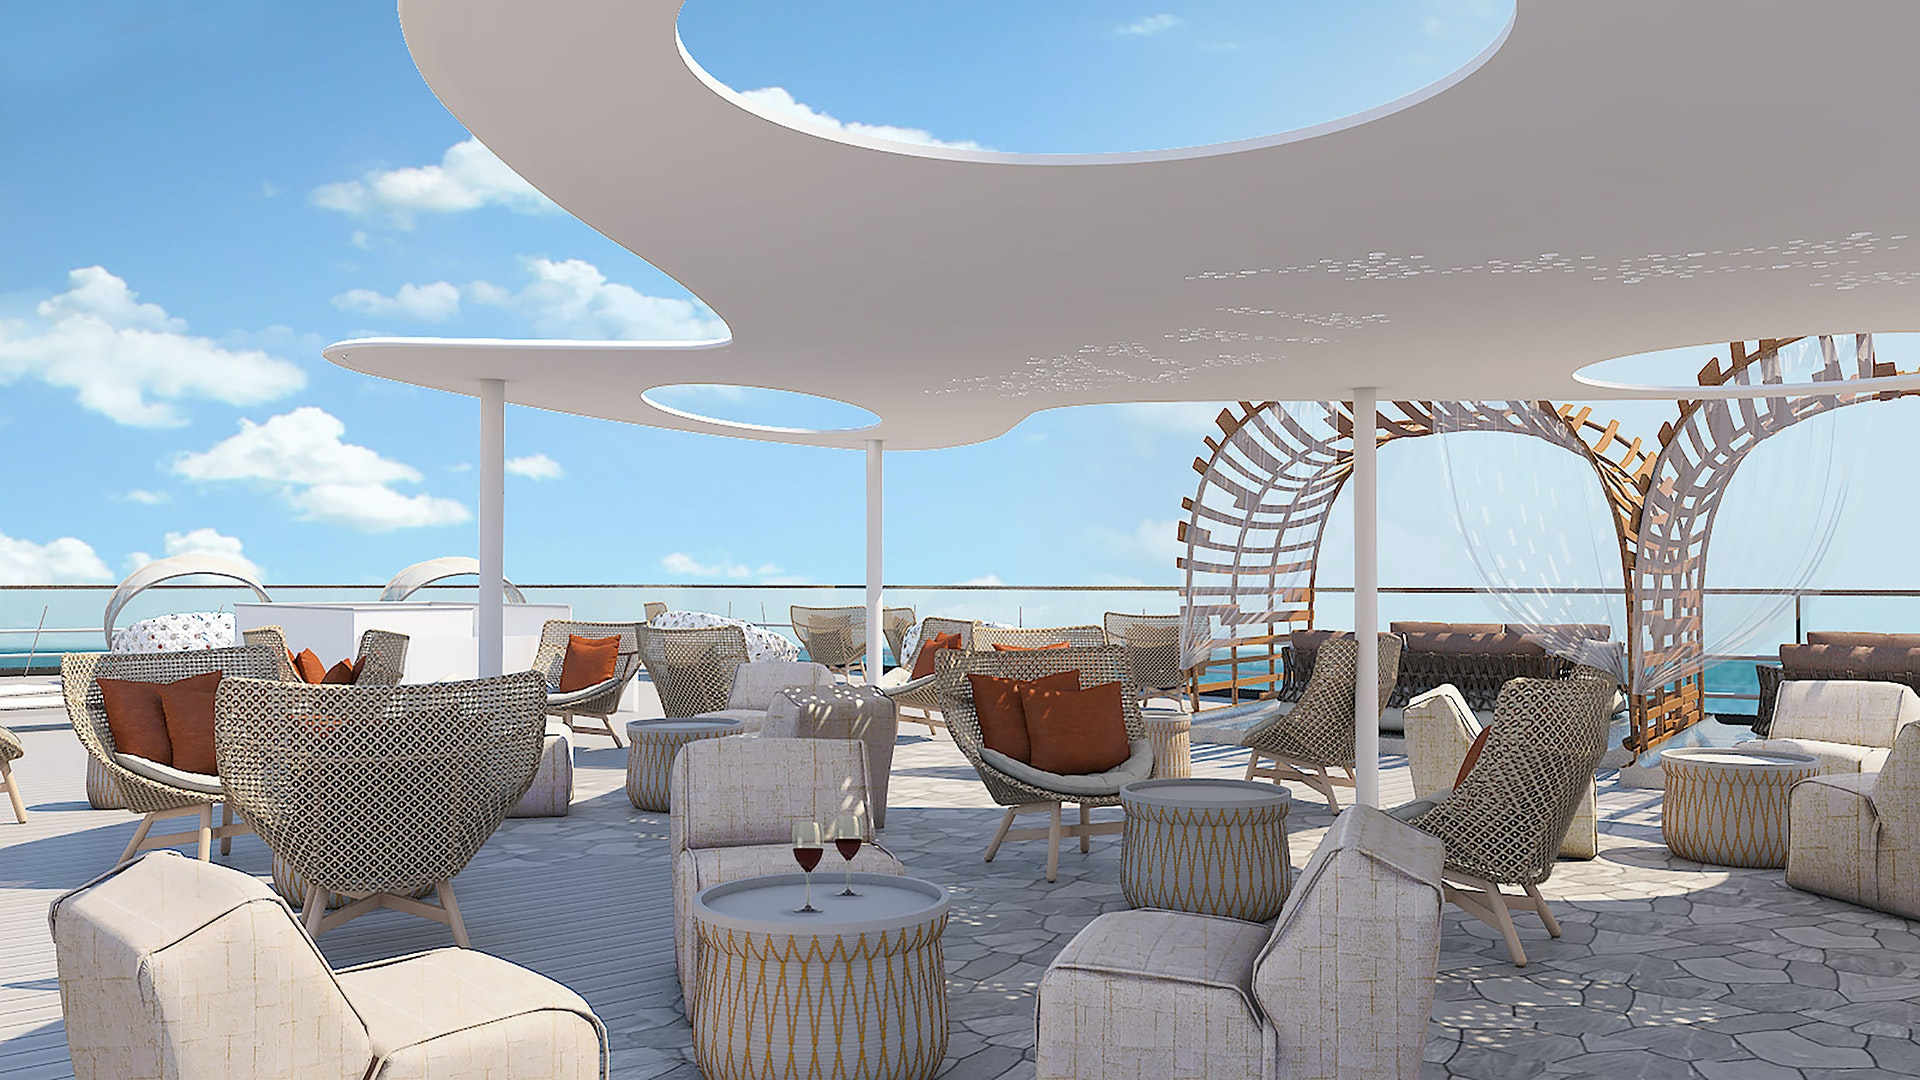 Celebrity Flora's upper deck will feature spaces for socializing, startgazing, and snoozing.